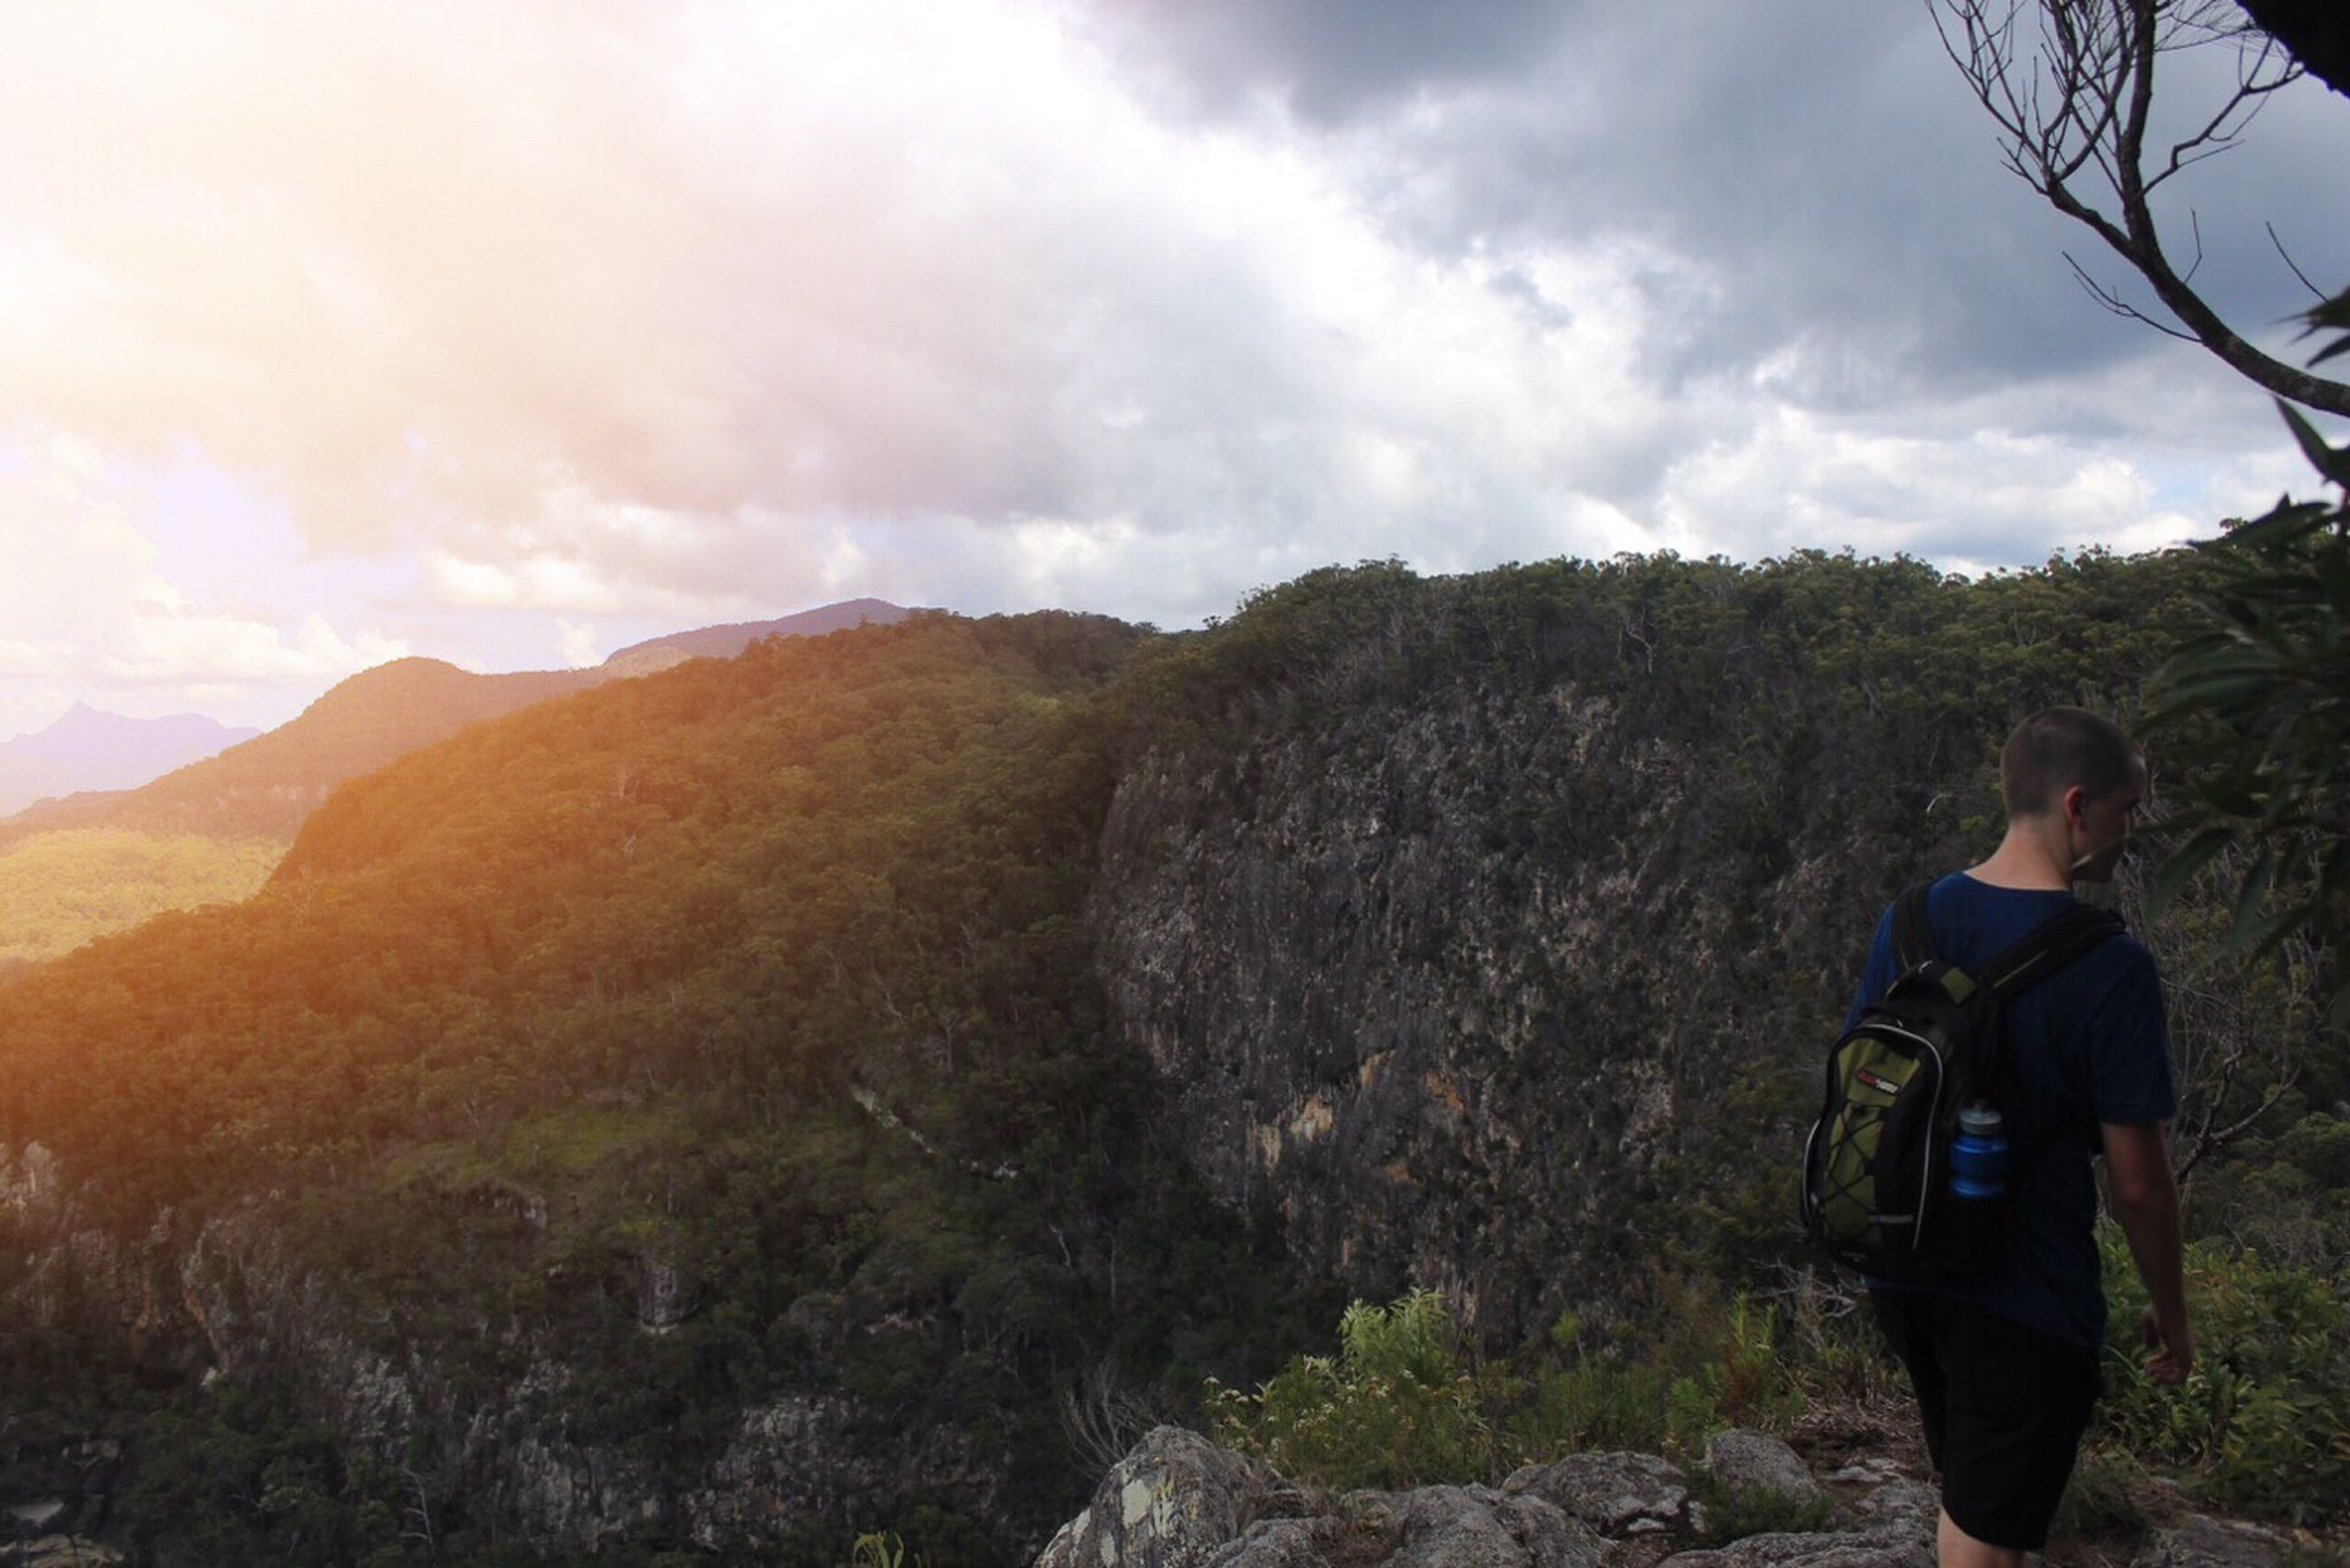 sky, lifestyles, mountain, leisure activity, cloud - sky, men, landscape, nature, tranquil scene, tranquility, rock - object, standing, hiking, scenics, rear view, casual clothing, full length, beauty in nature